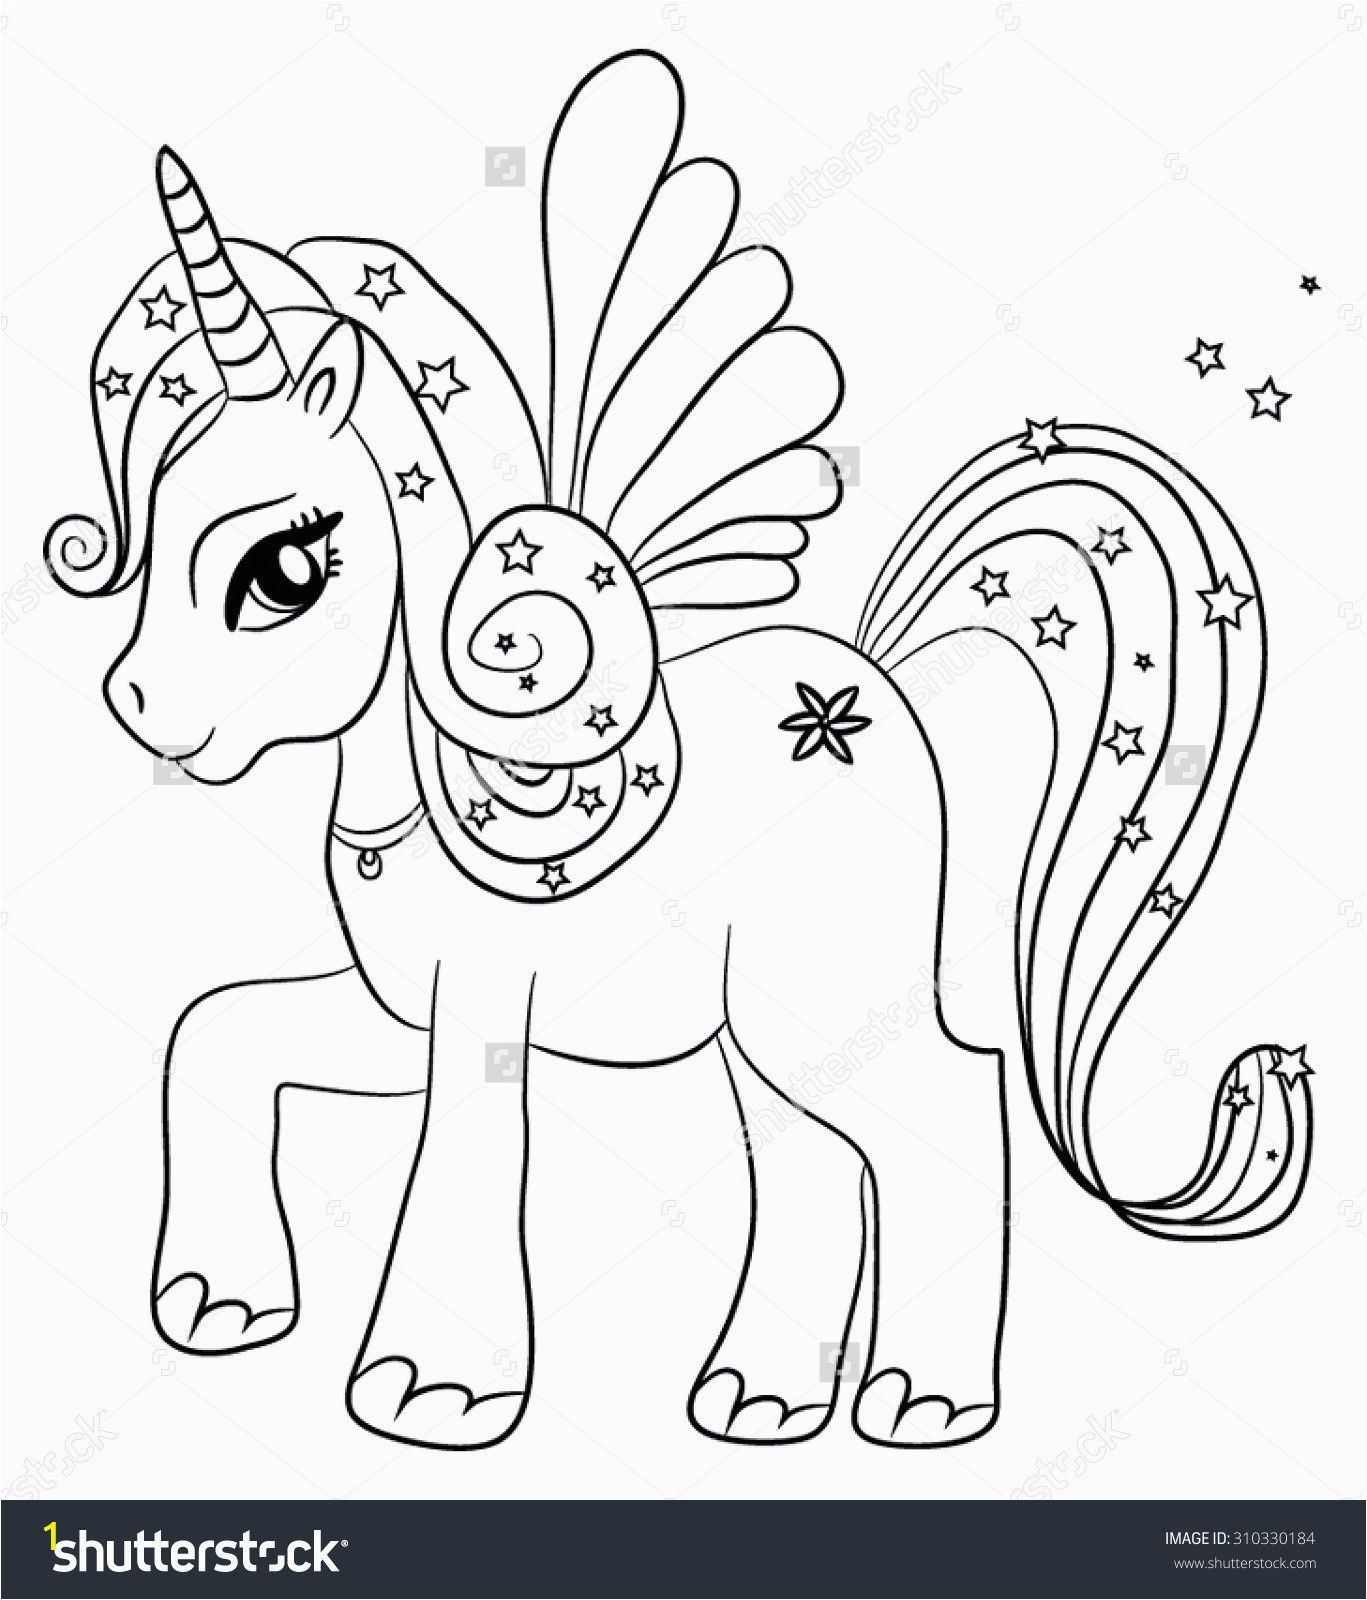 unicorns print saferbrowser image search results inkleur free unicorn coloring to pictures and color colour printable of printables sheets cute colouring sheet by number